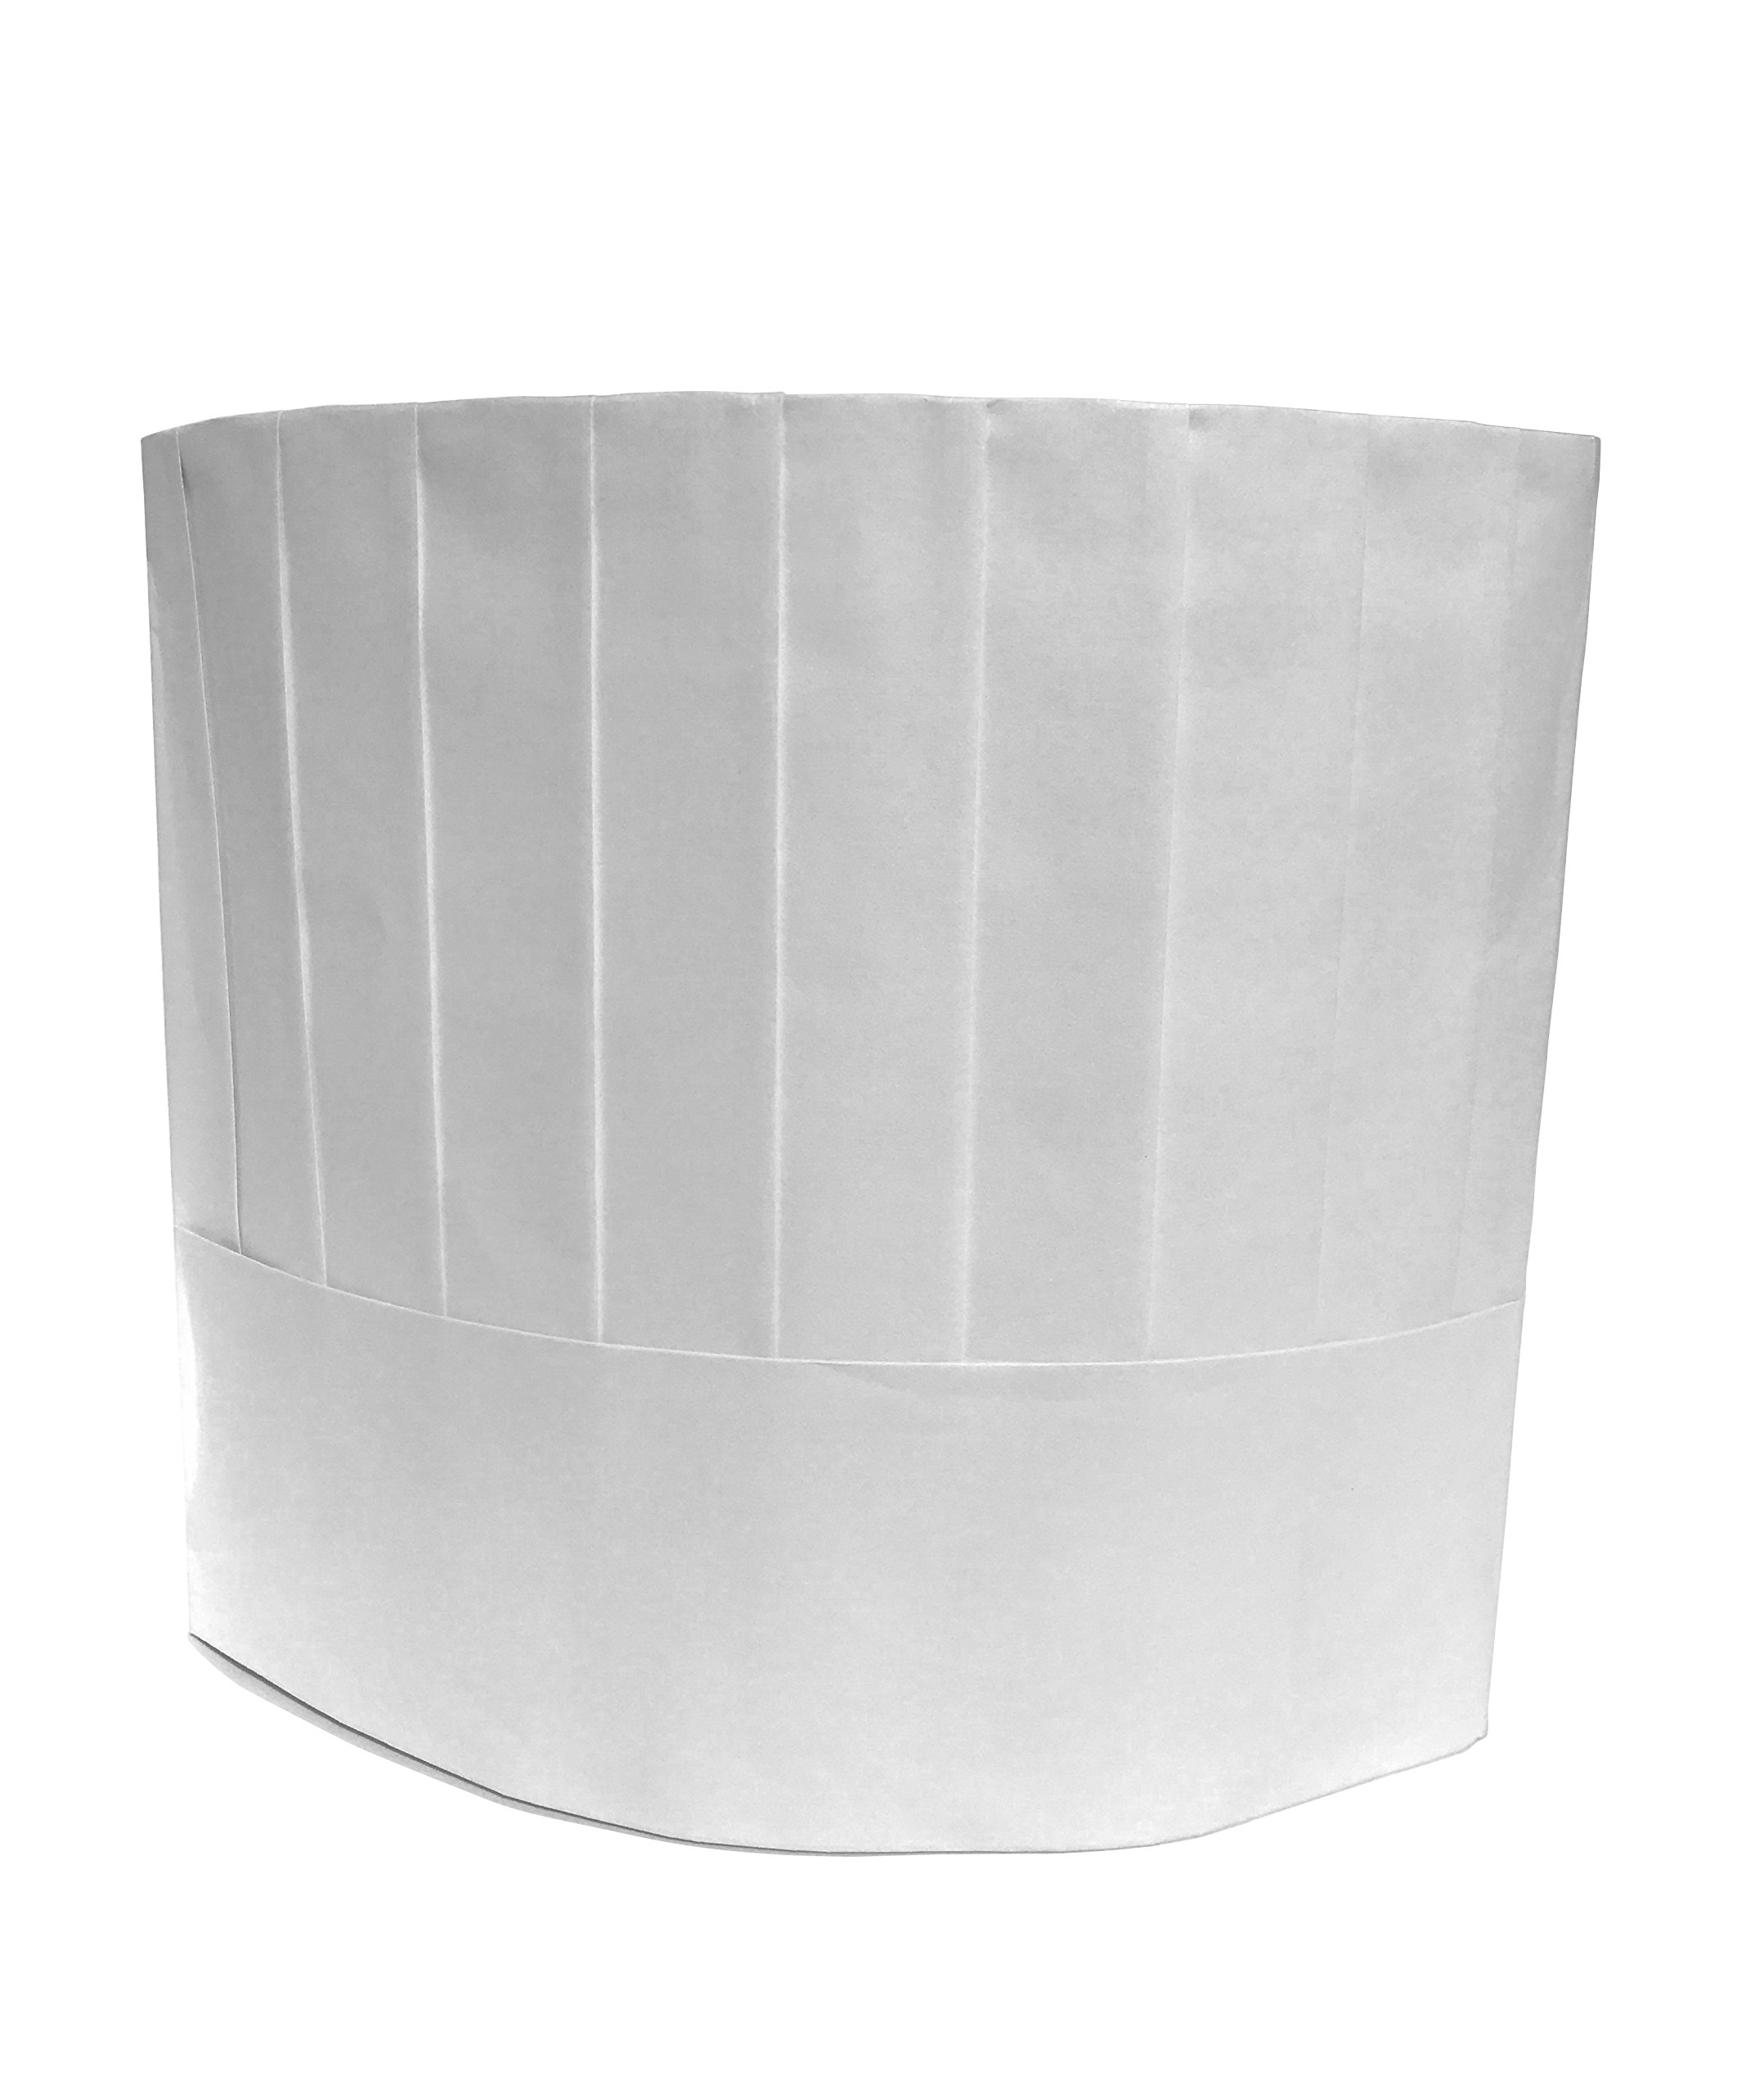 Disposable Chef Hats, Pleated, Adjustable Band, 9'' Tall, White - 20 pcs per pack